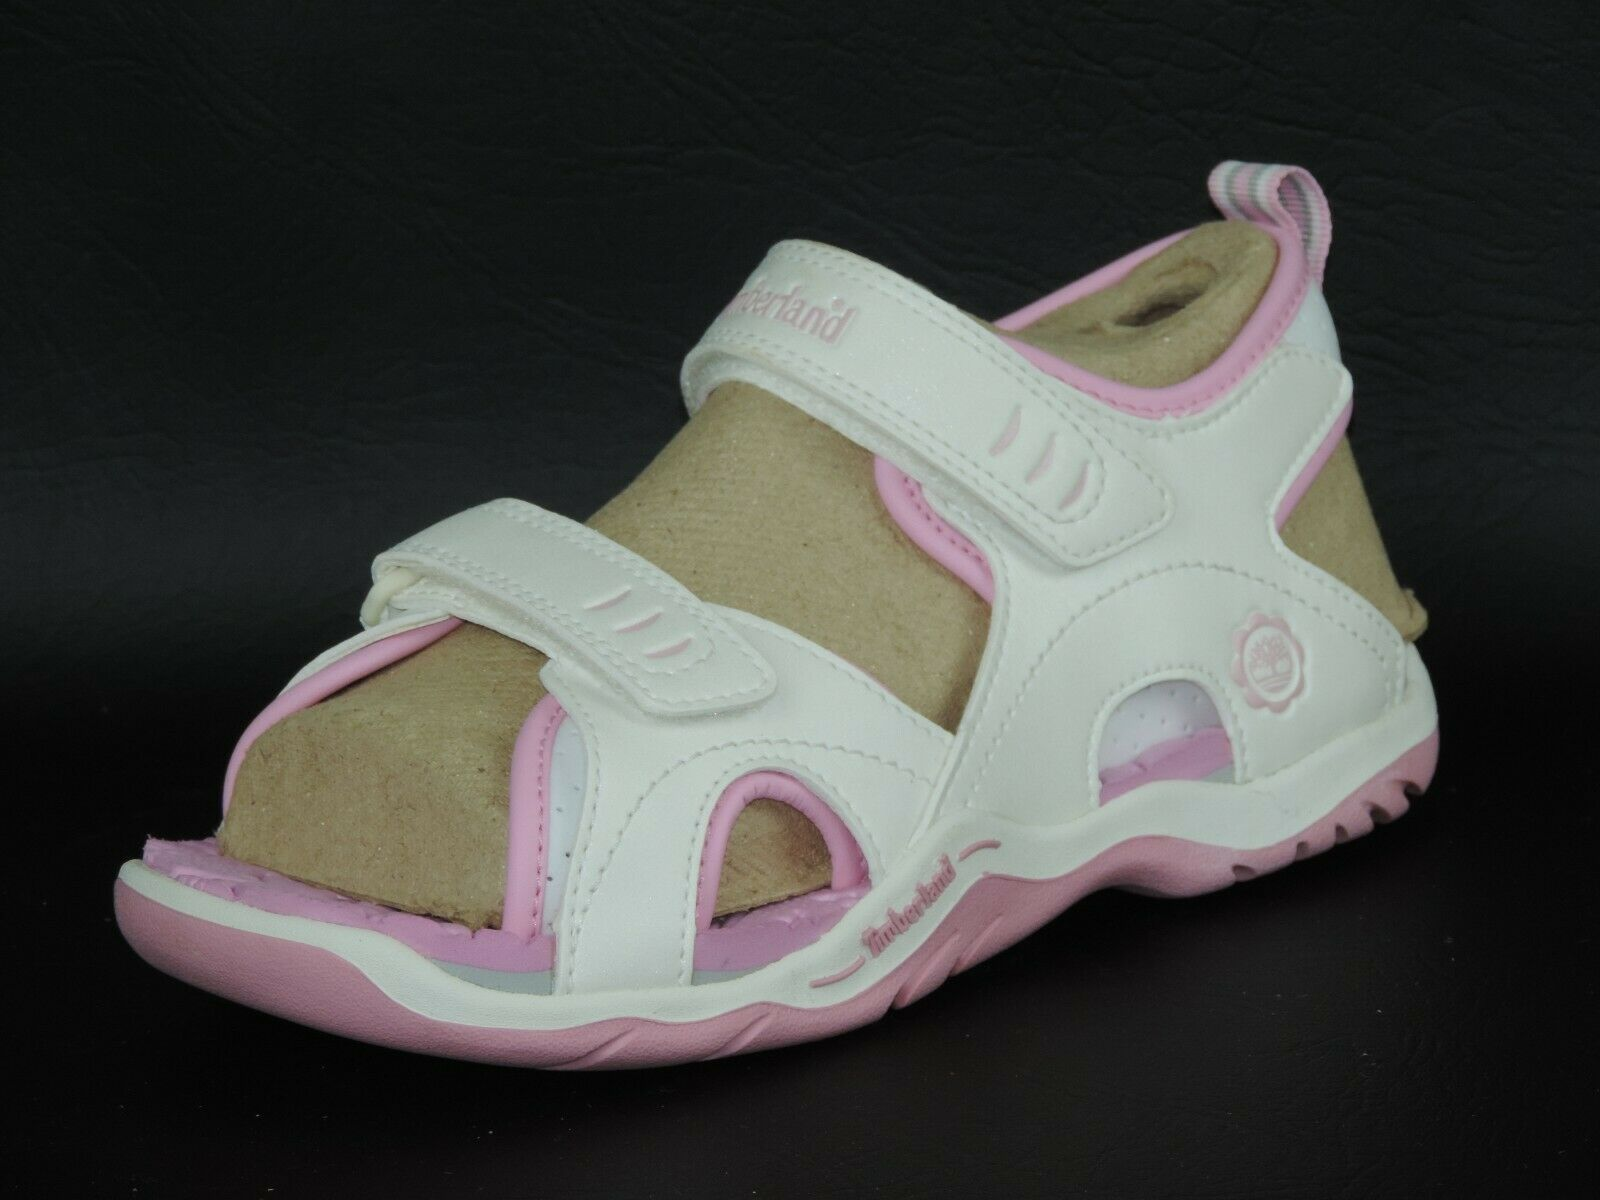 Timberland Girls Sandals Rock Skipper 2 STR White Pink Leather 65751 Hiking Rare